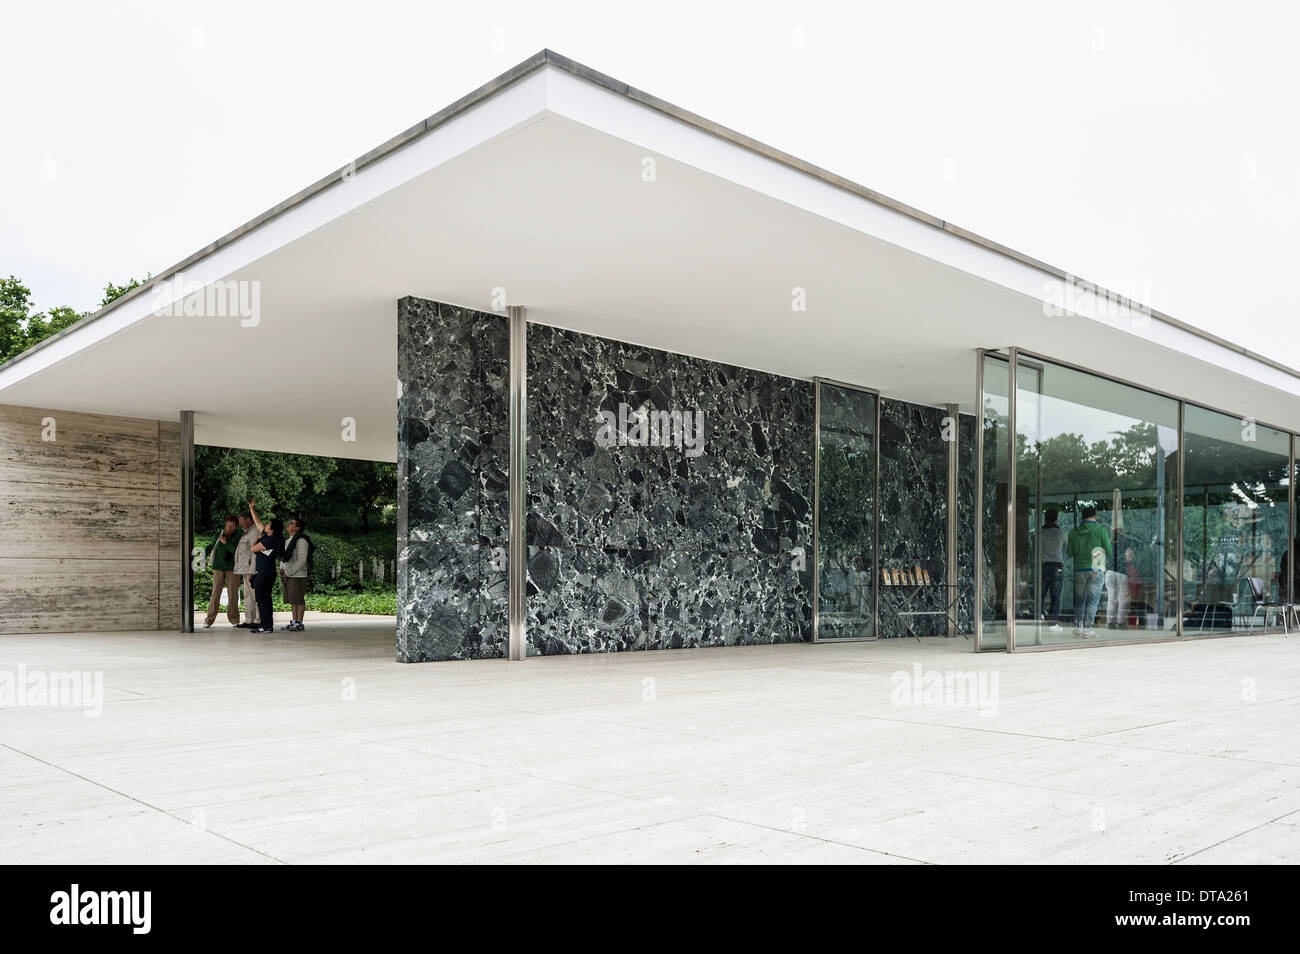 barcelona pavilion architect ludwig mies van der rohe for the 1929 stock photo 66604105 alamy. Black Bedroom Furniture Sets. Home Design Ideas